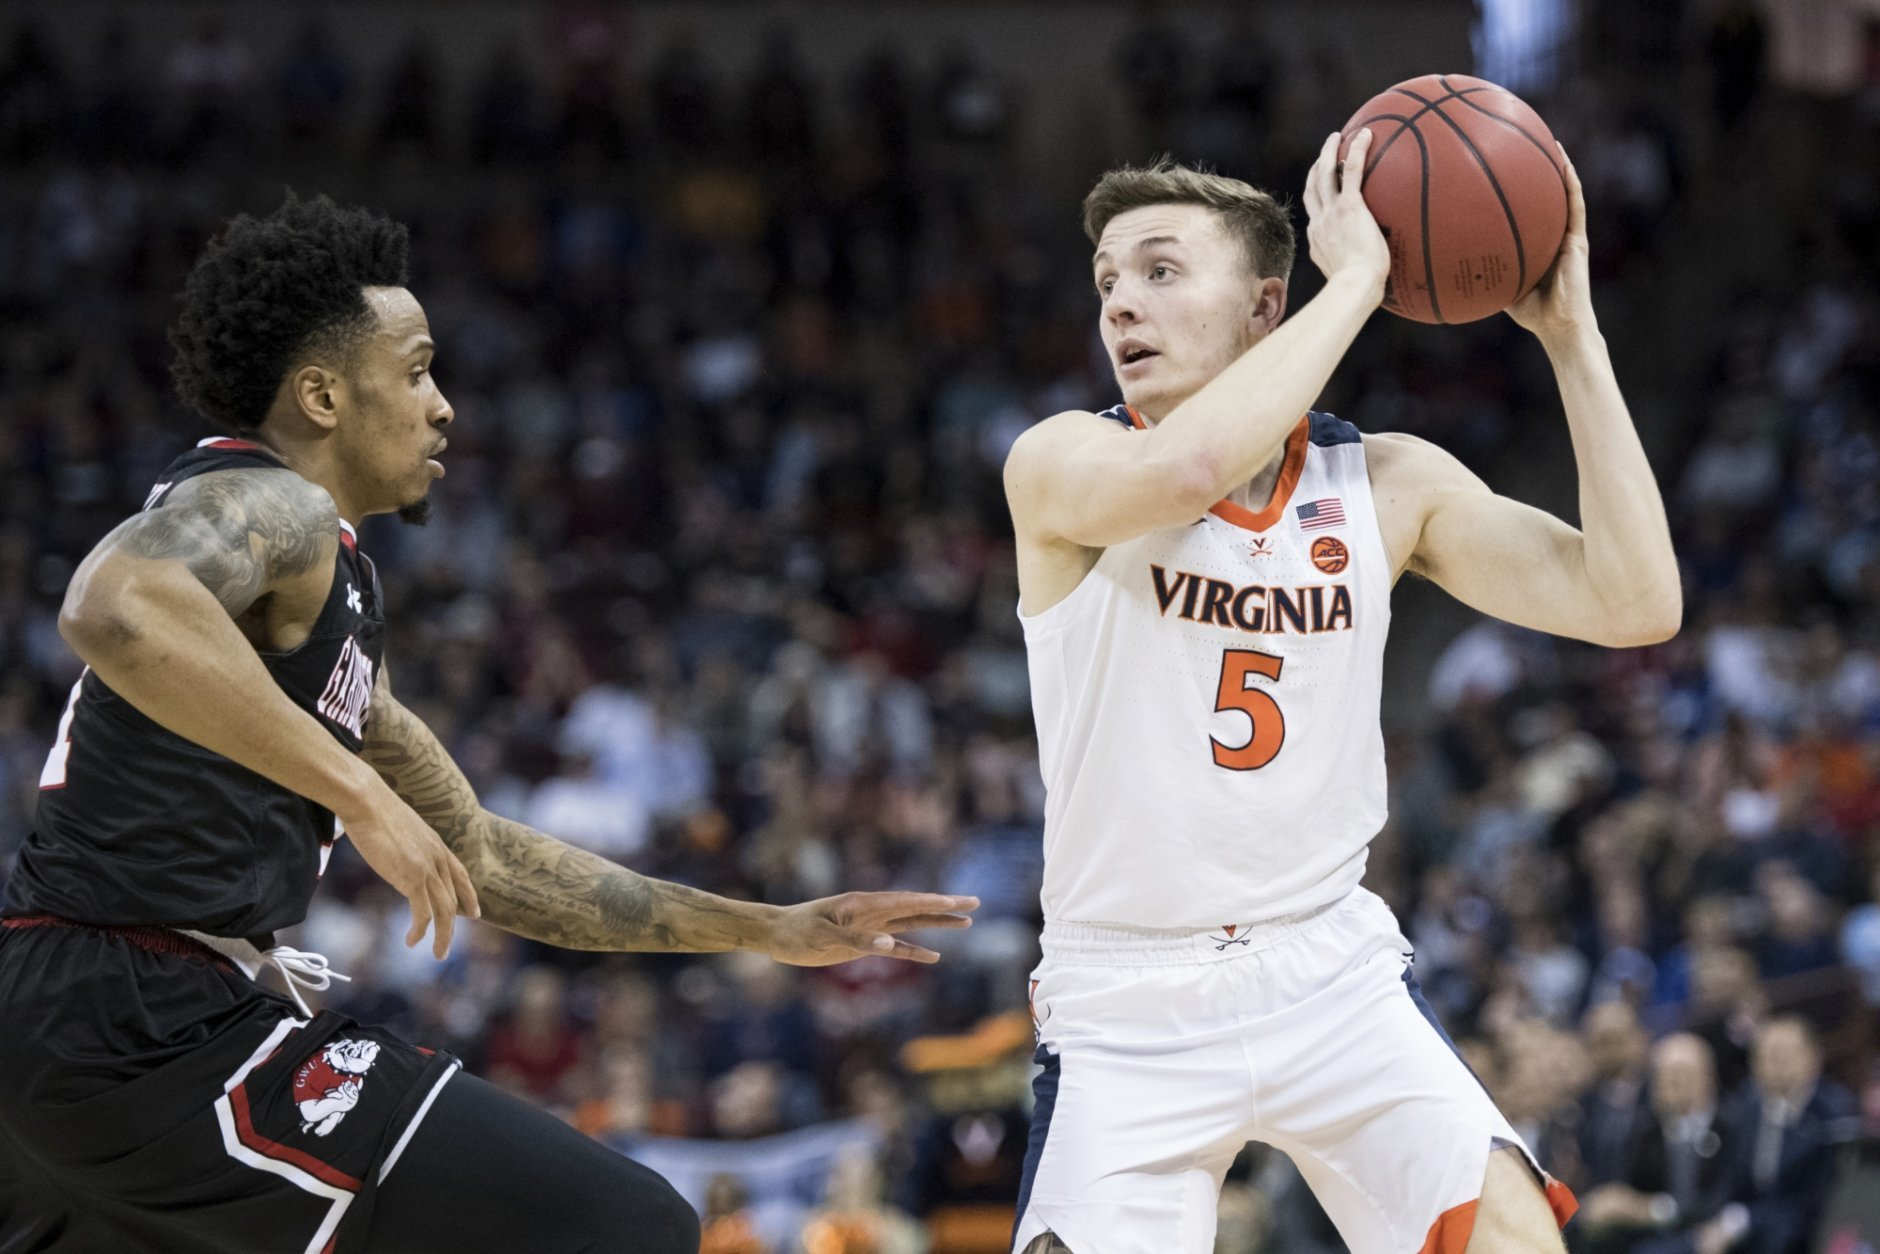 Virginia guard Kyle Guy (5) looks for a teammate as Gardner-Webb guard David Efianayi, left, defends during a first-round game in the NCAA men's college basketball tournament Friday, March 22, 2019, in Columbia, S.C. (AP Photo/Sean Rayford)